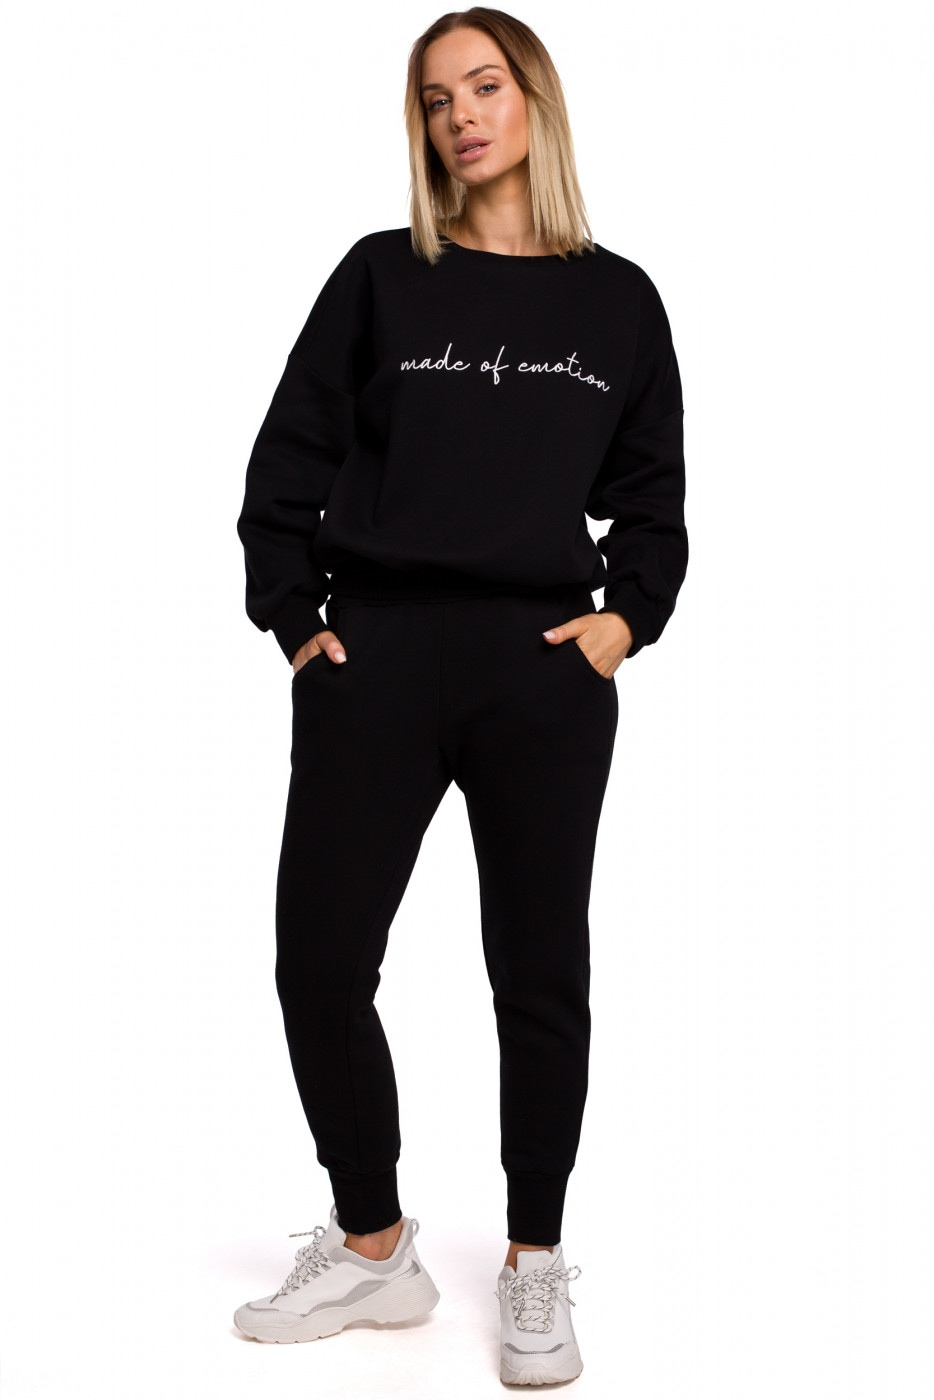 Made Of Emotion Woman's Sweatshirt M536